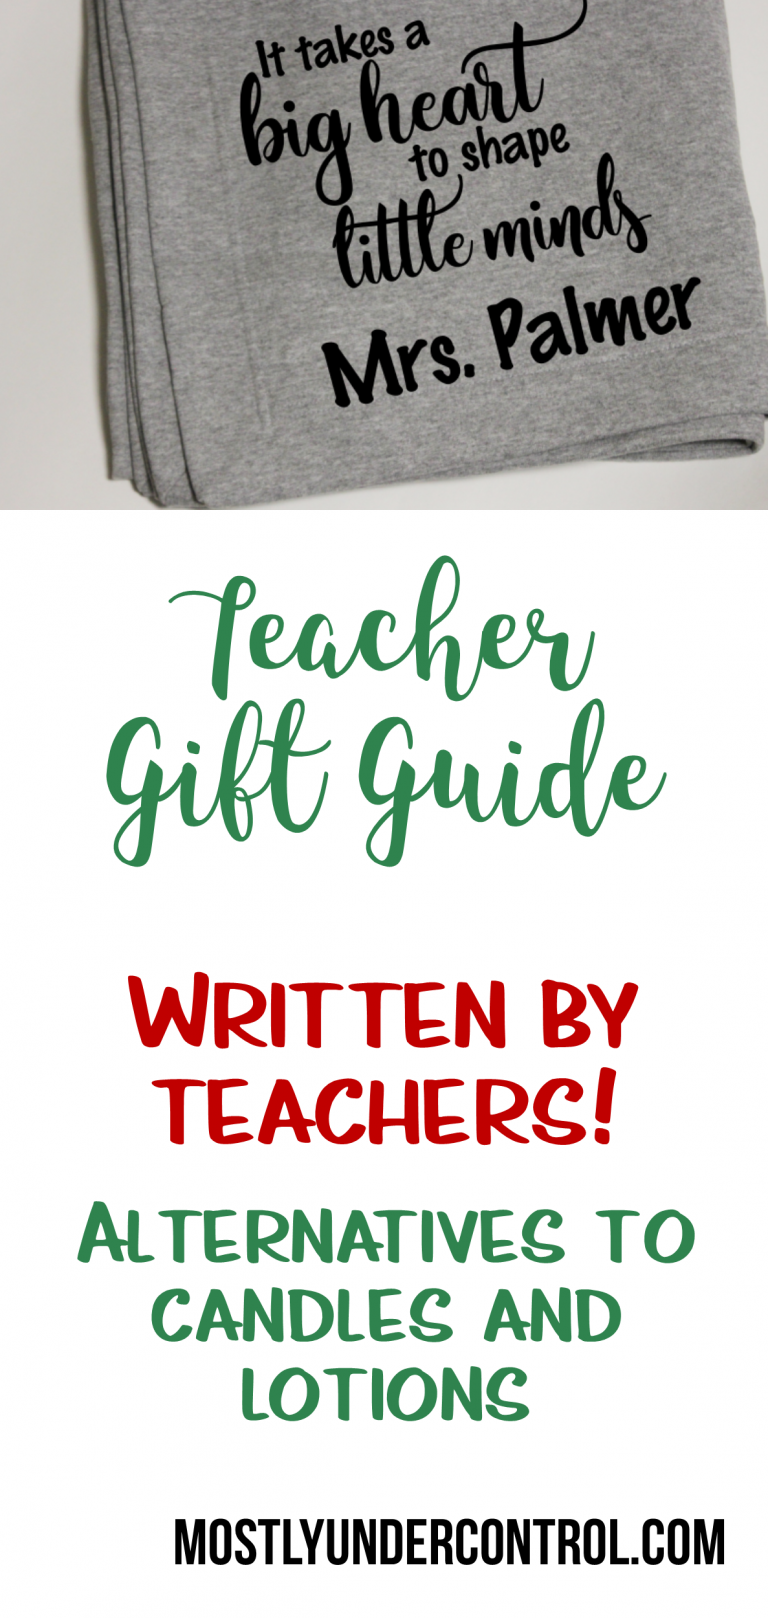 Teacher gifts your kids' teachers will actually enjoy